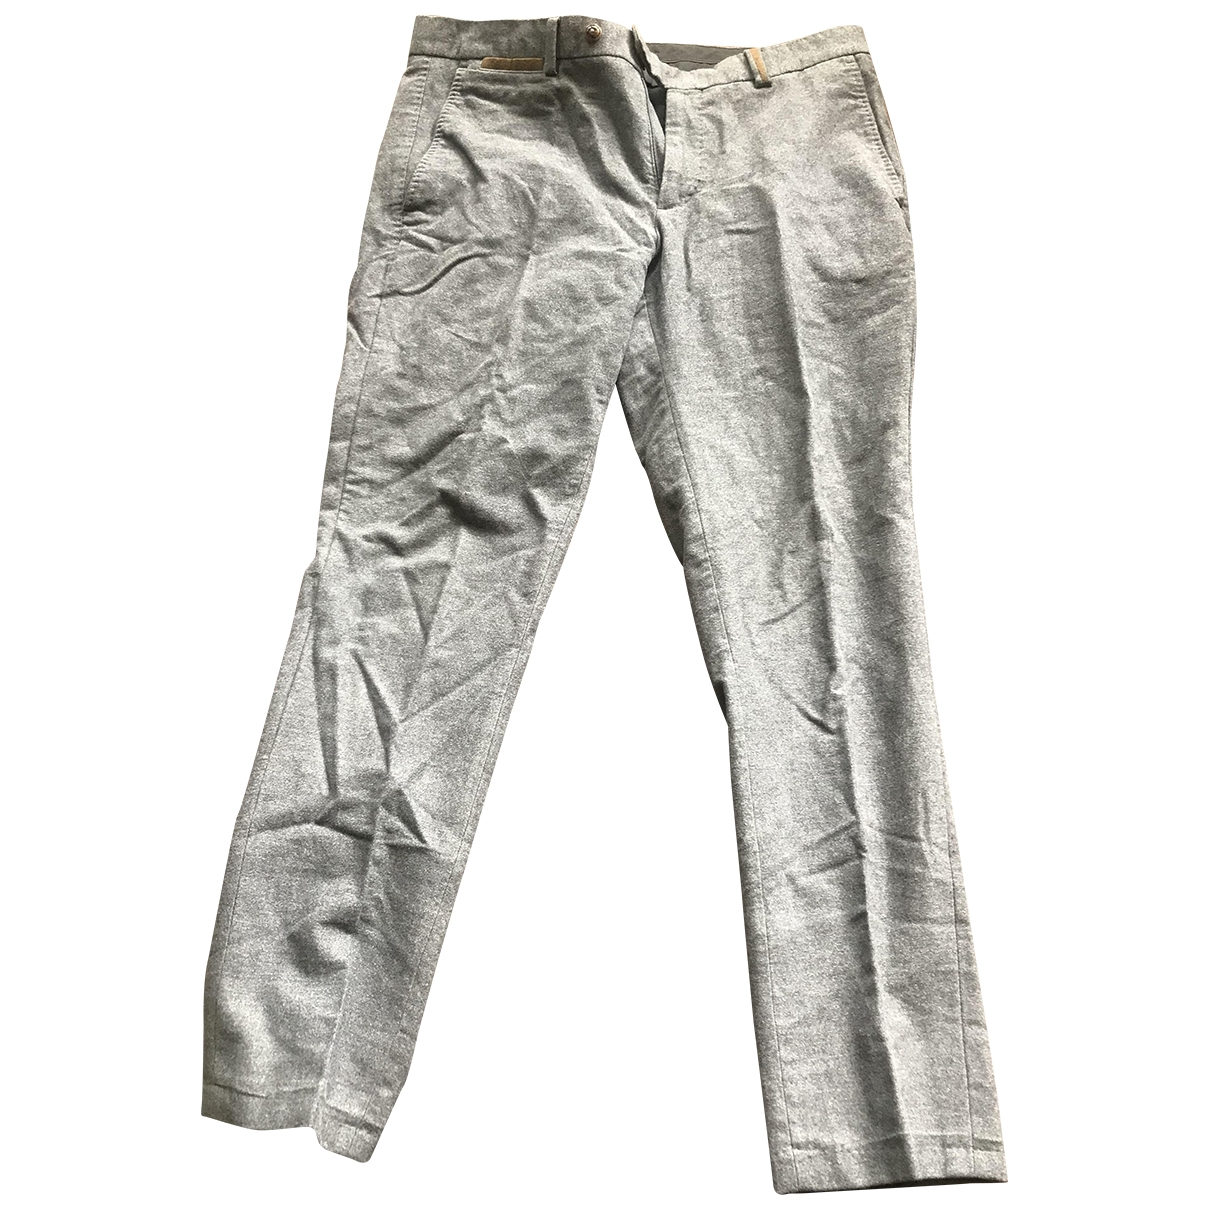 Massimo Dutti \N Grey Cotton Trousers for Men 30 UK - US